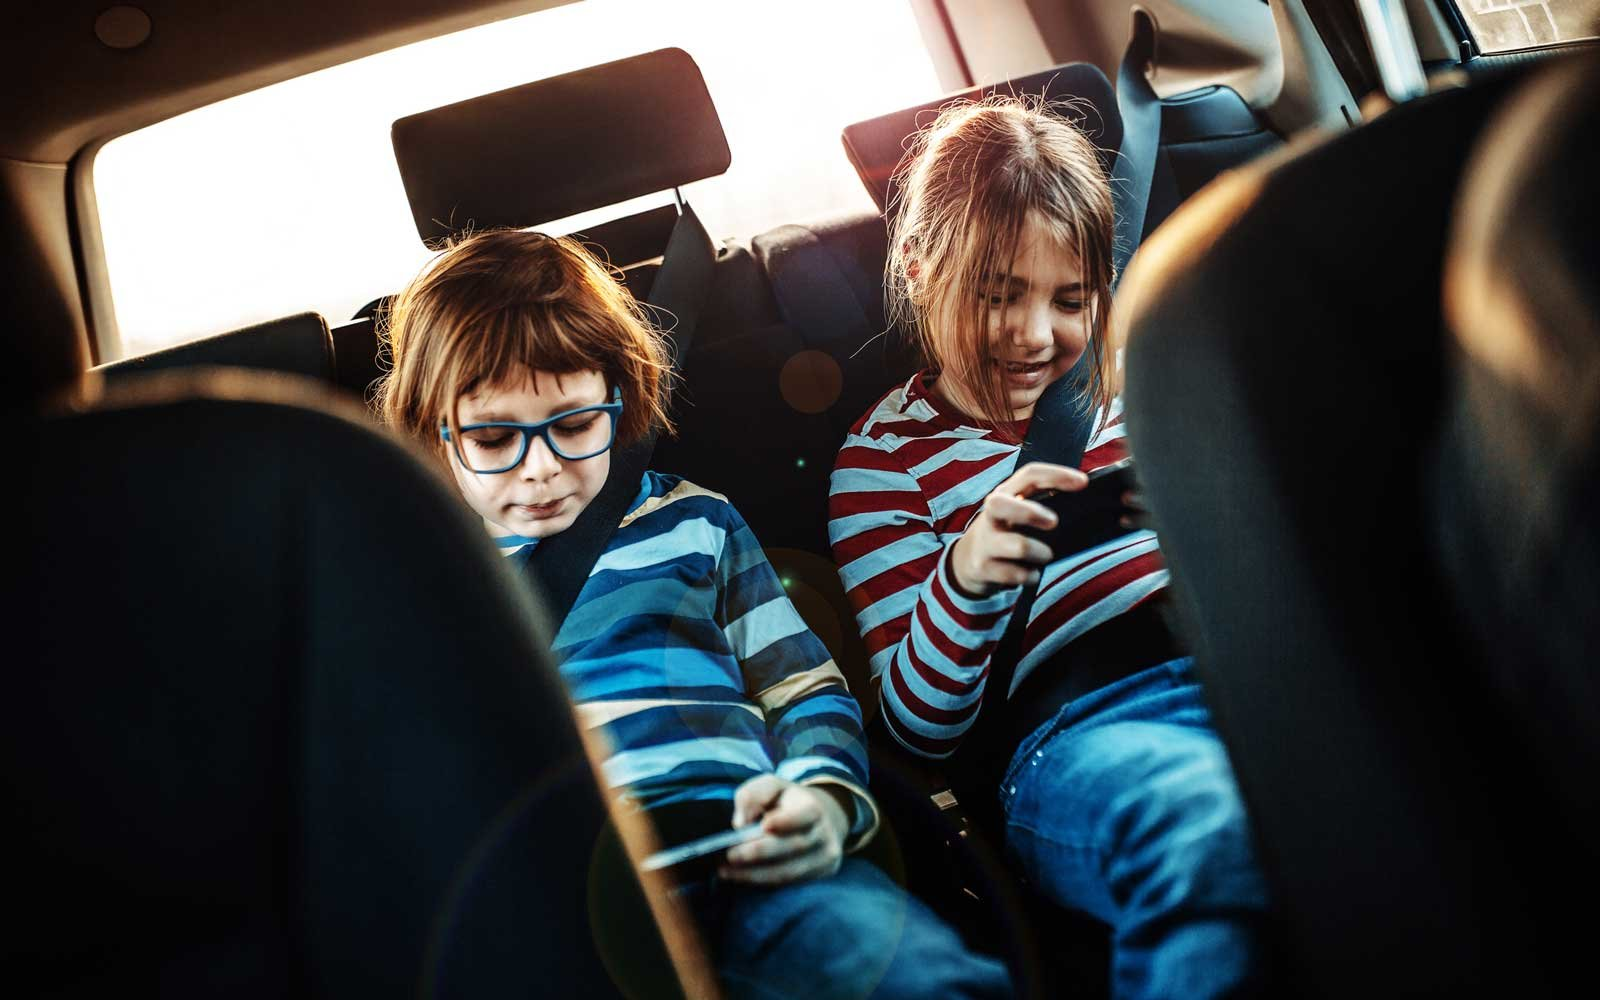 Siblings on smartphones in the backseat